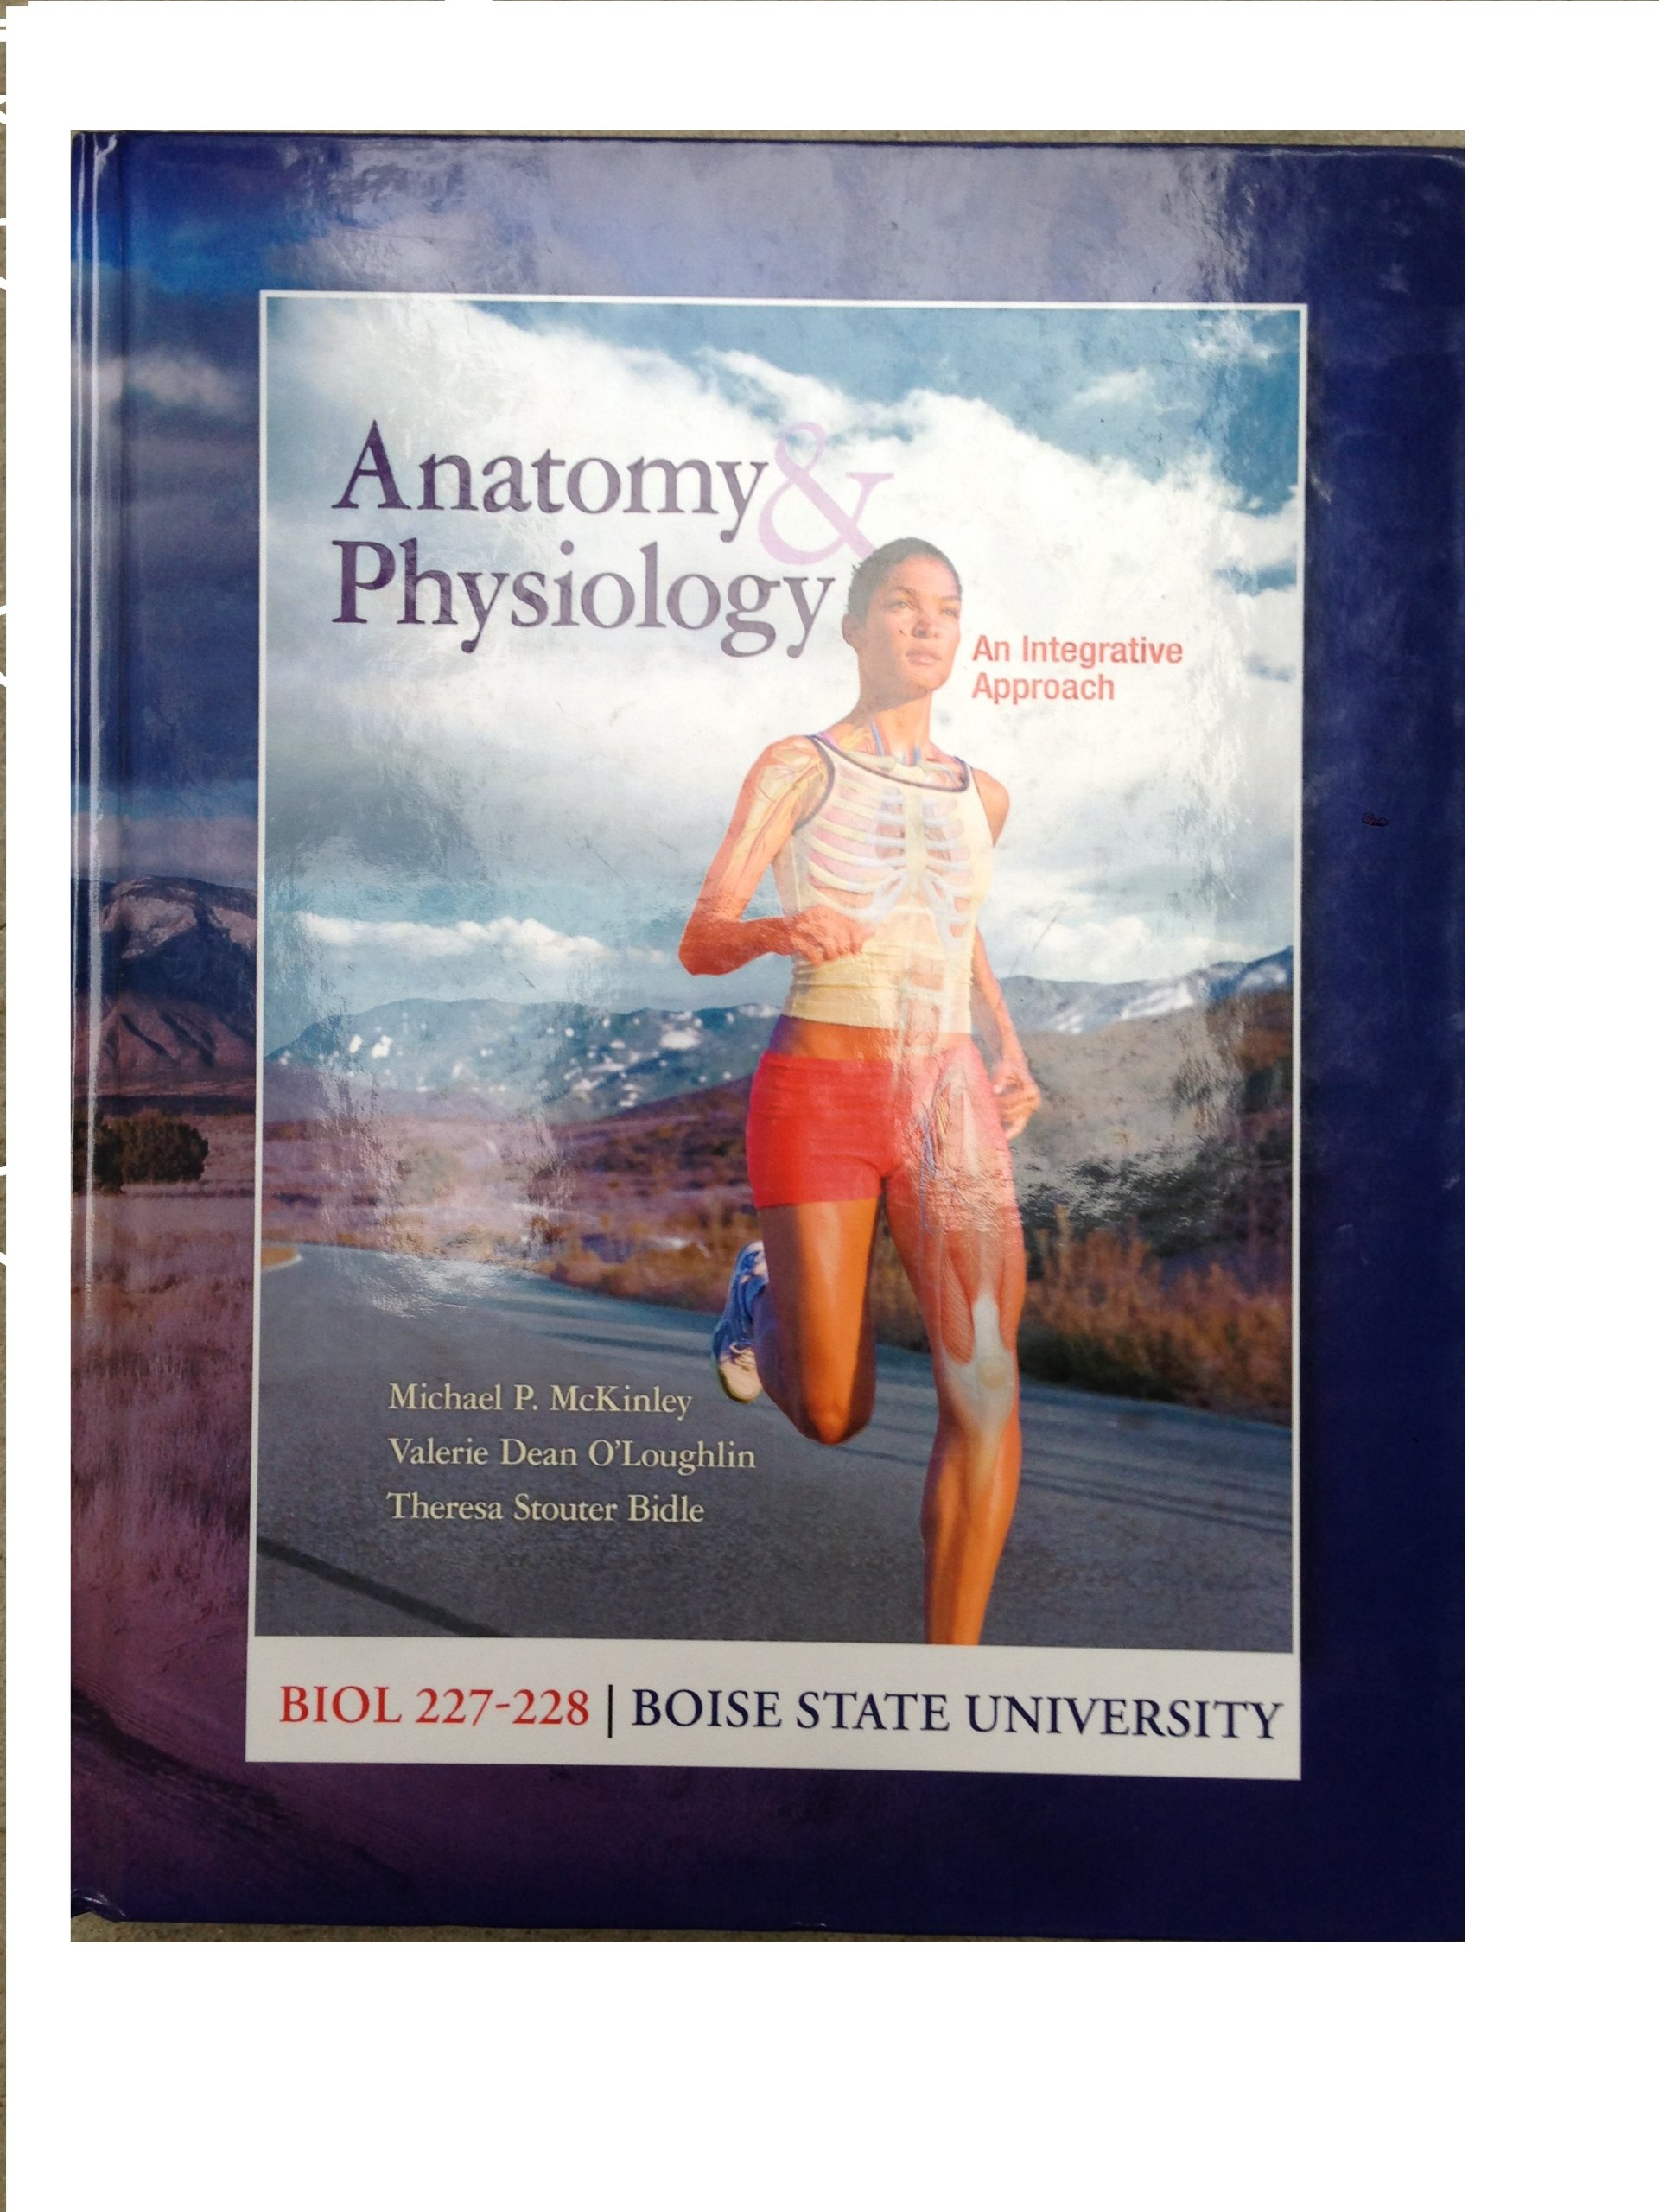 Anatomy and Physiology: An Integrative Approach Biol 227-228 Boise ...